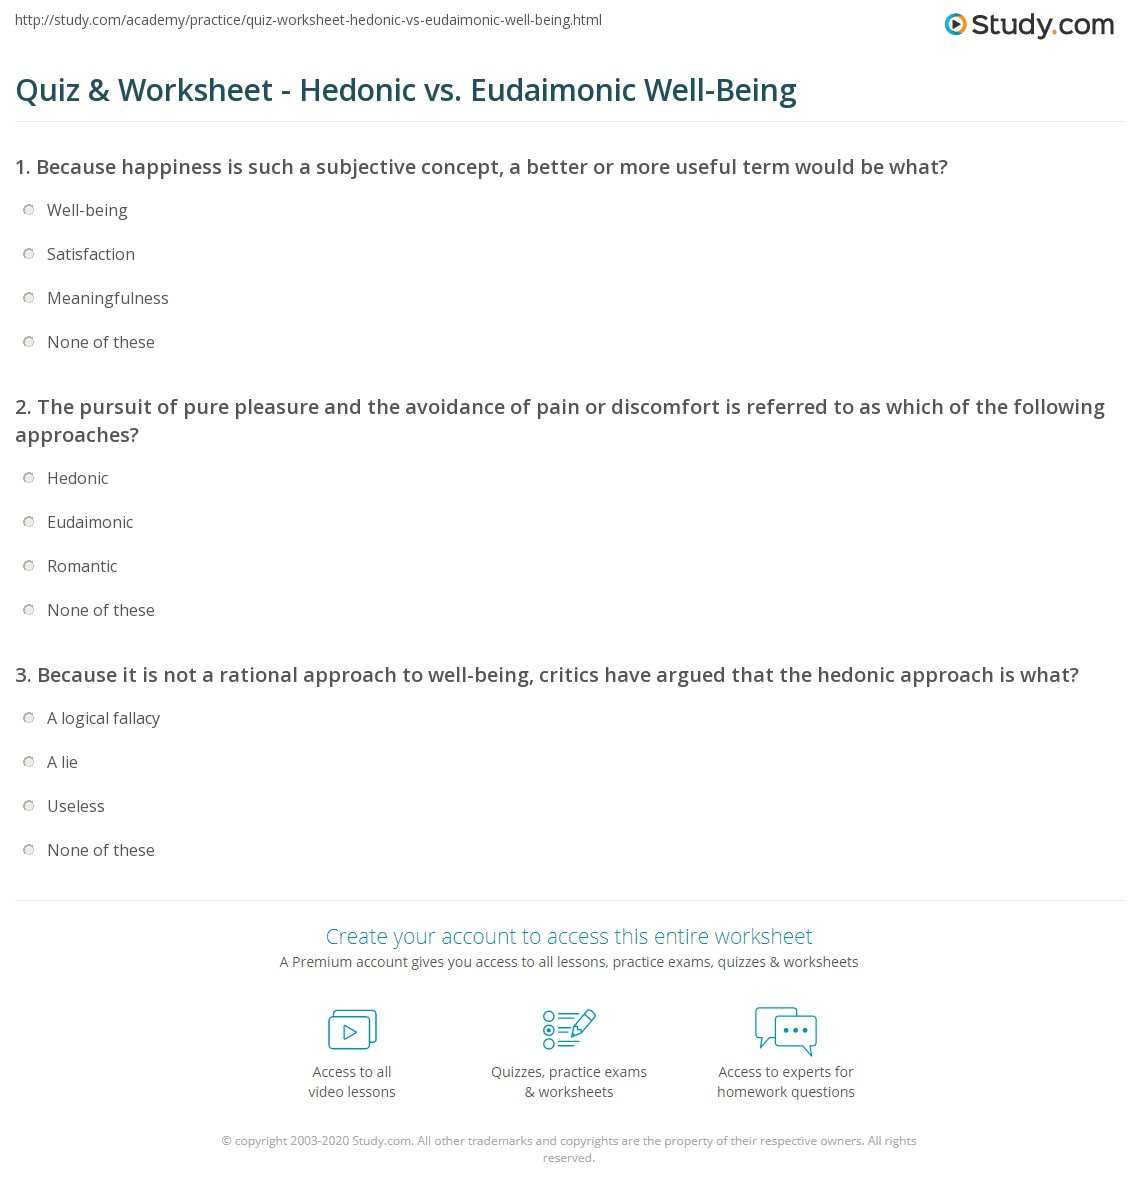 quiz worksheet hedonic vs eudaimonic well being. Black Bedroom Furniture Sets. Home Design Ideas